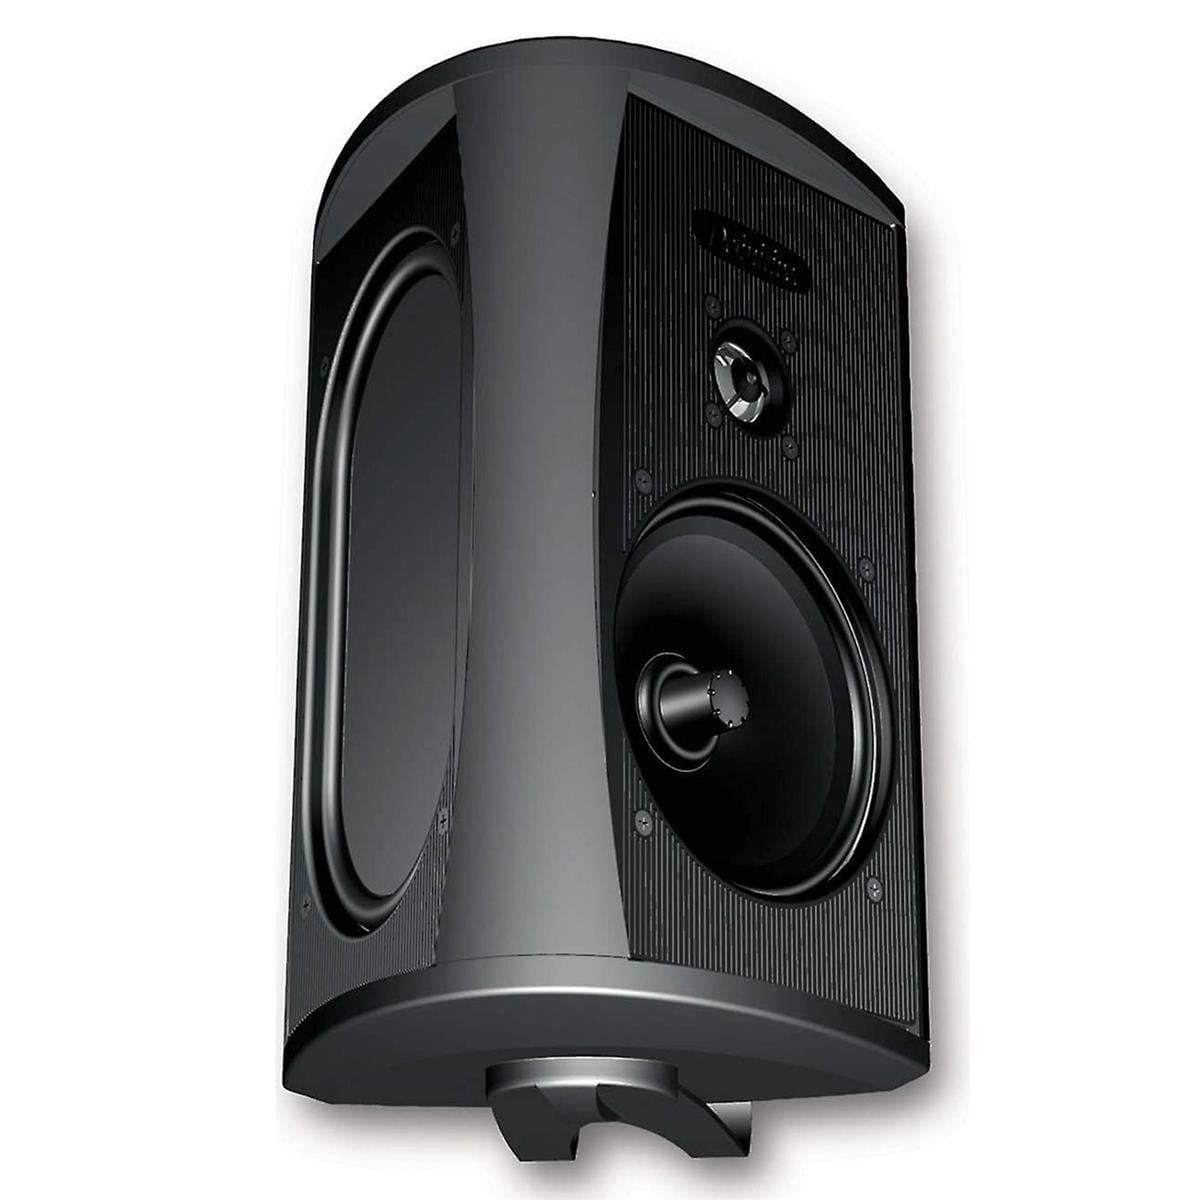 Definitive Technology AW 6500 Outdoor Speaker (Single, Black) Amazon $93.49